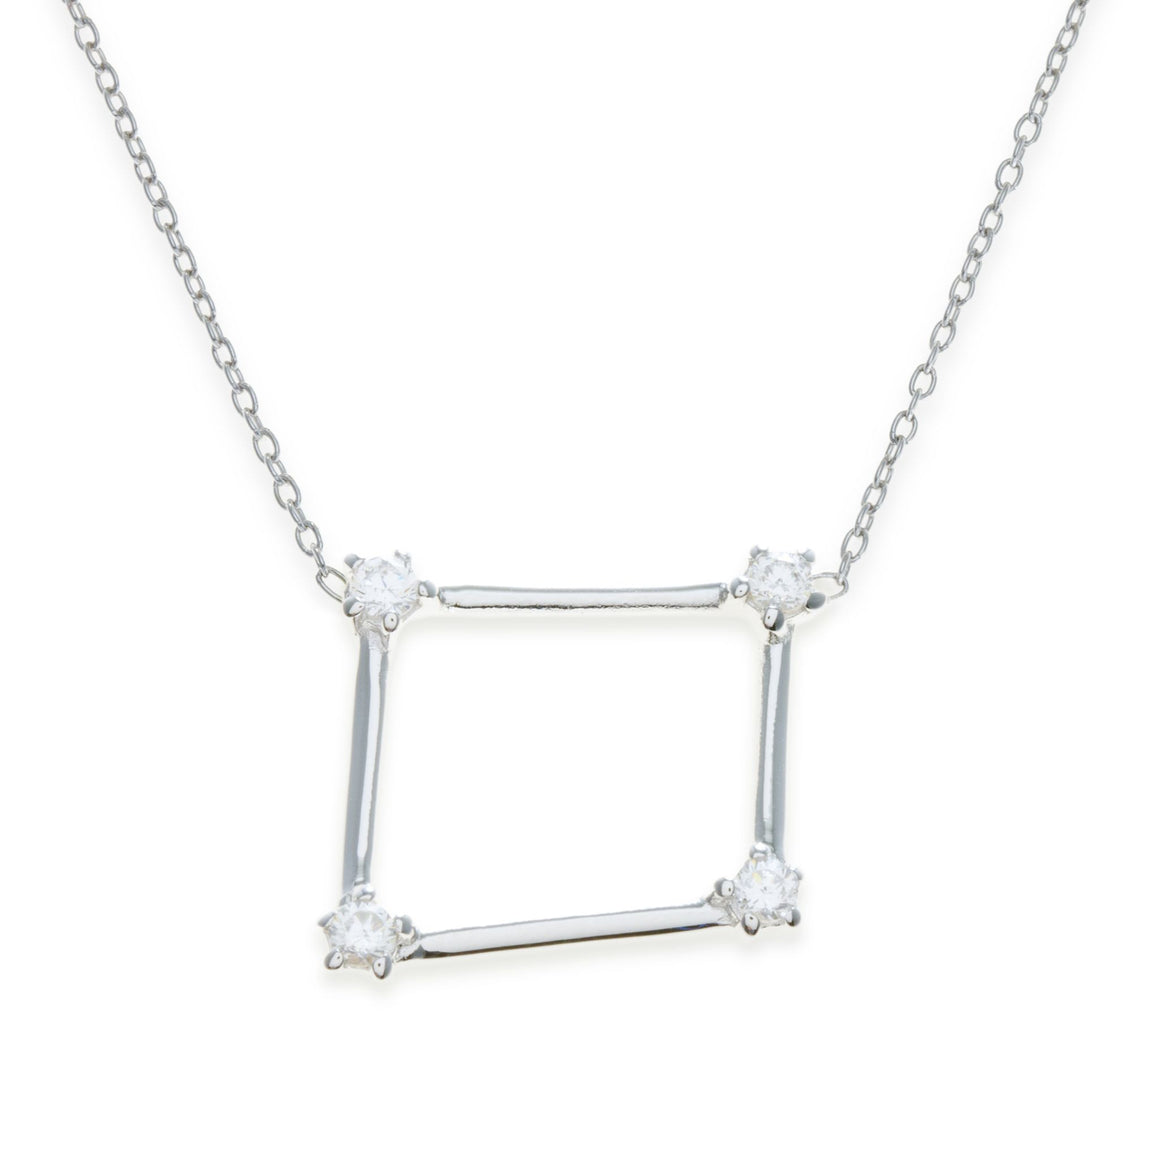 Sterling Silver Libra Necklace | Kith & Kin | Wish Upon a Star Collection